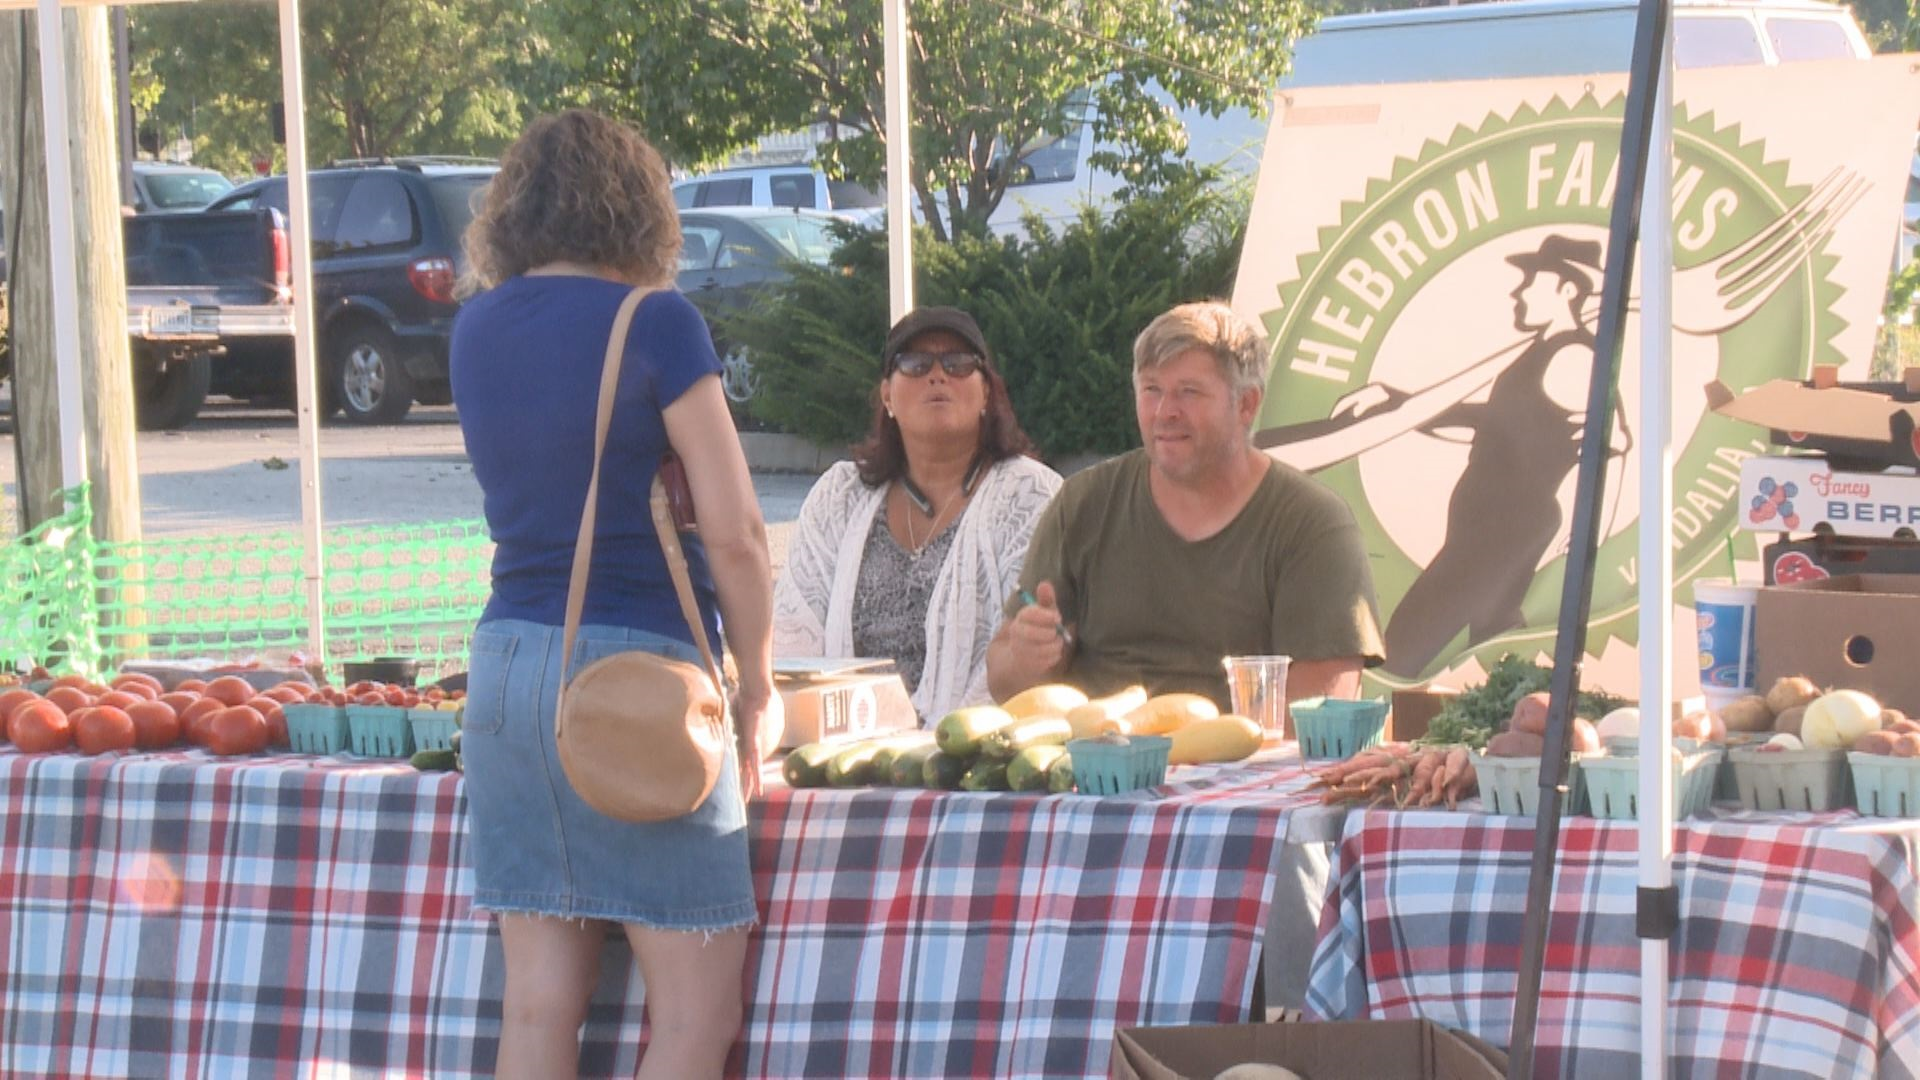 South Bend's East and West sides come together over food